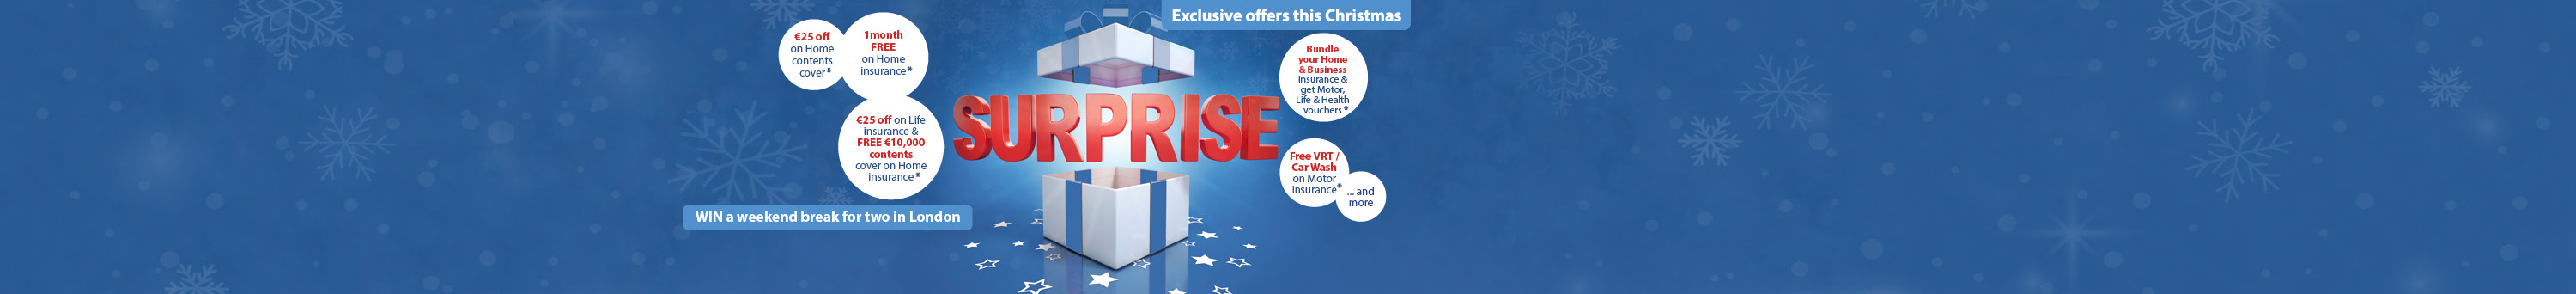 Christmas Offers 2014